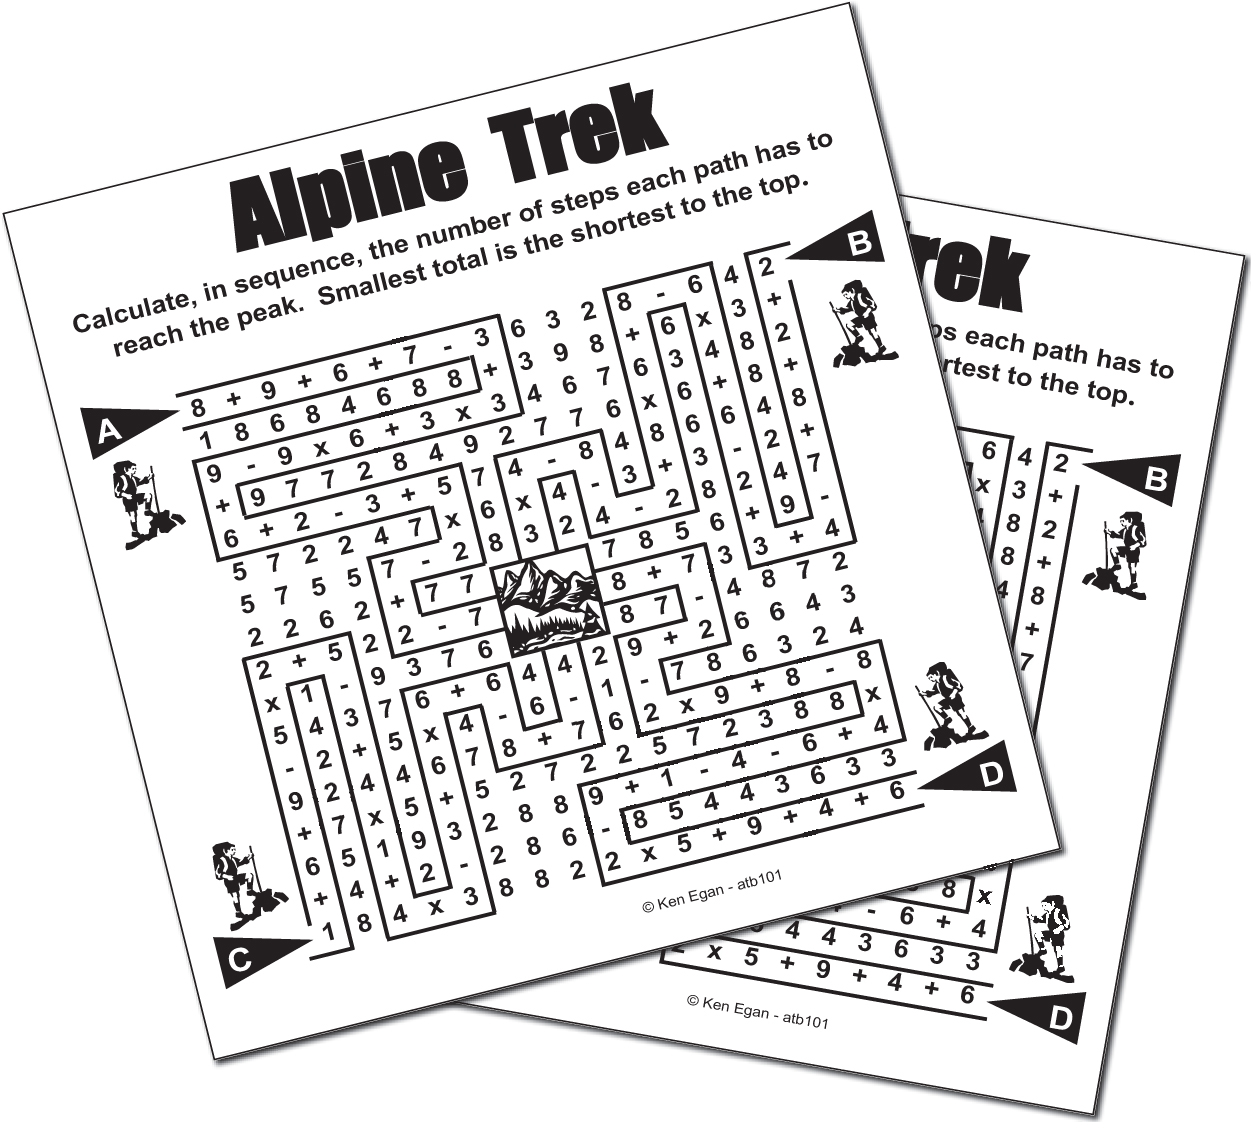 Thumbnail for 20 ALPINE TREK PUZZLE BOOKLET 01